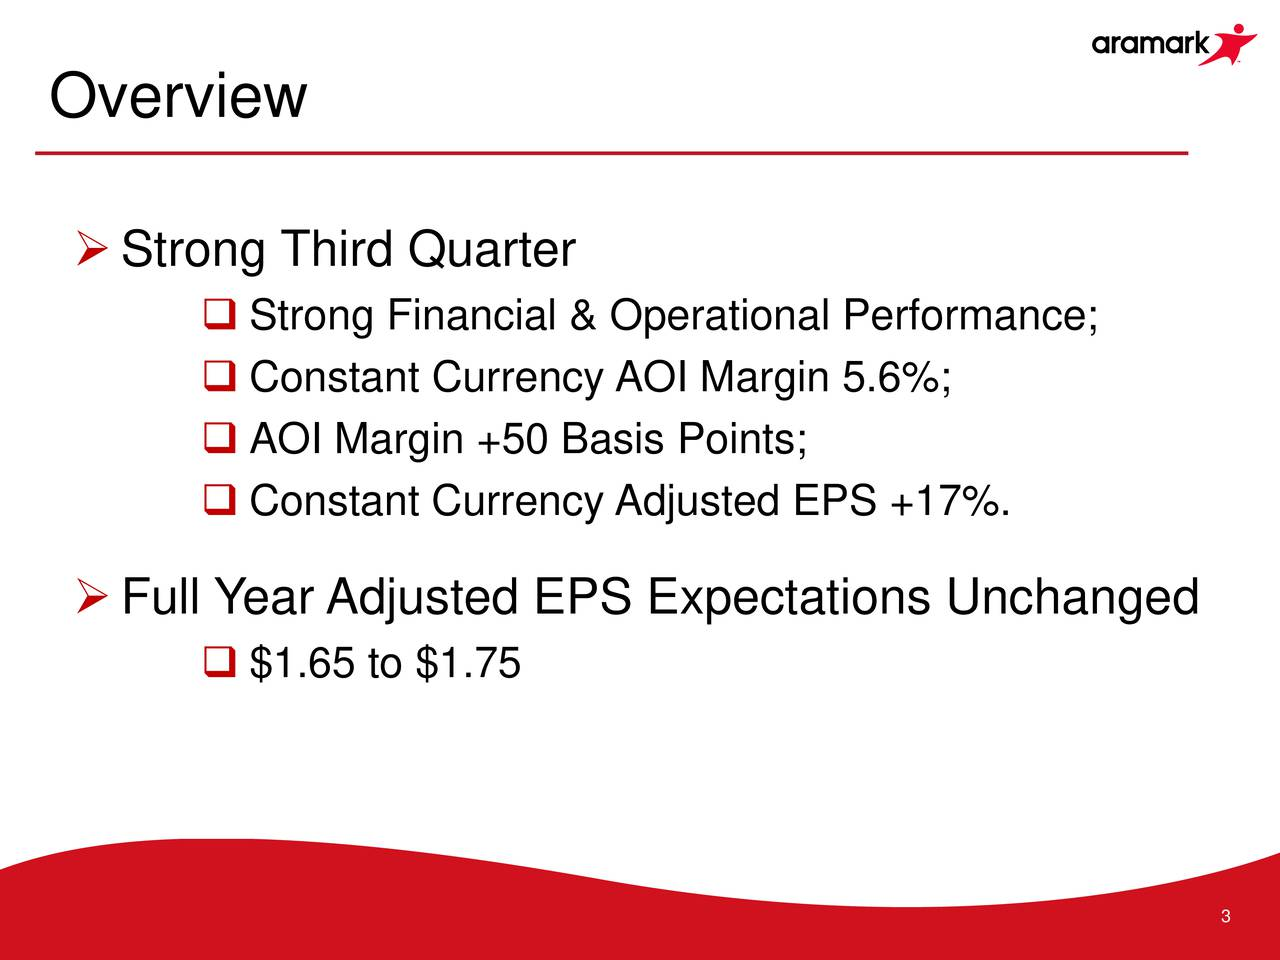 Strong Third Quarter Strong Financial & Operational Performance; Constant Currency AOI Margin 5.6%; AOI Margin +50 Basis Points; Constant Currency Adjusted EPS +17%. Full Year Adjusted EPS Expectations Unchanged $1.65 to $1.75 3